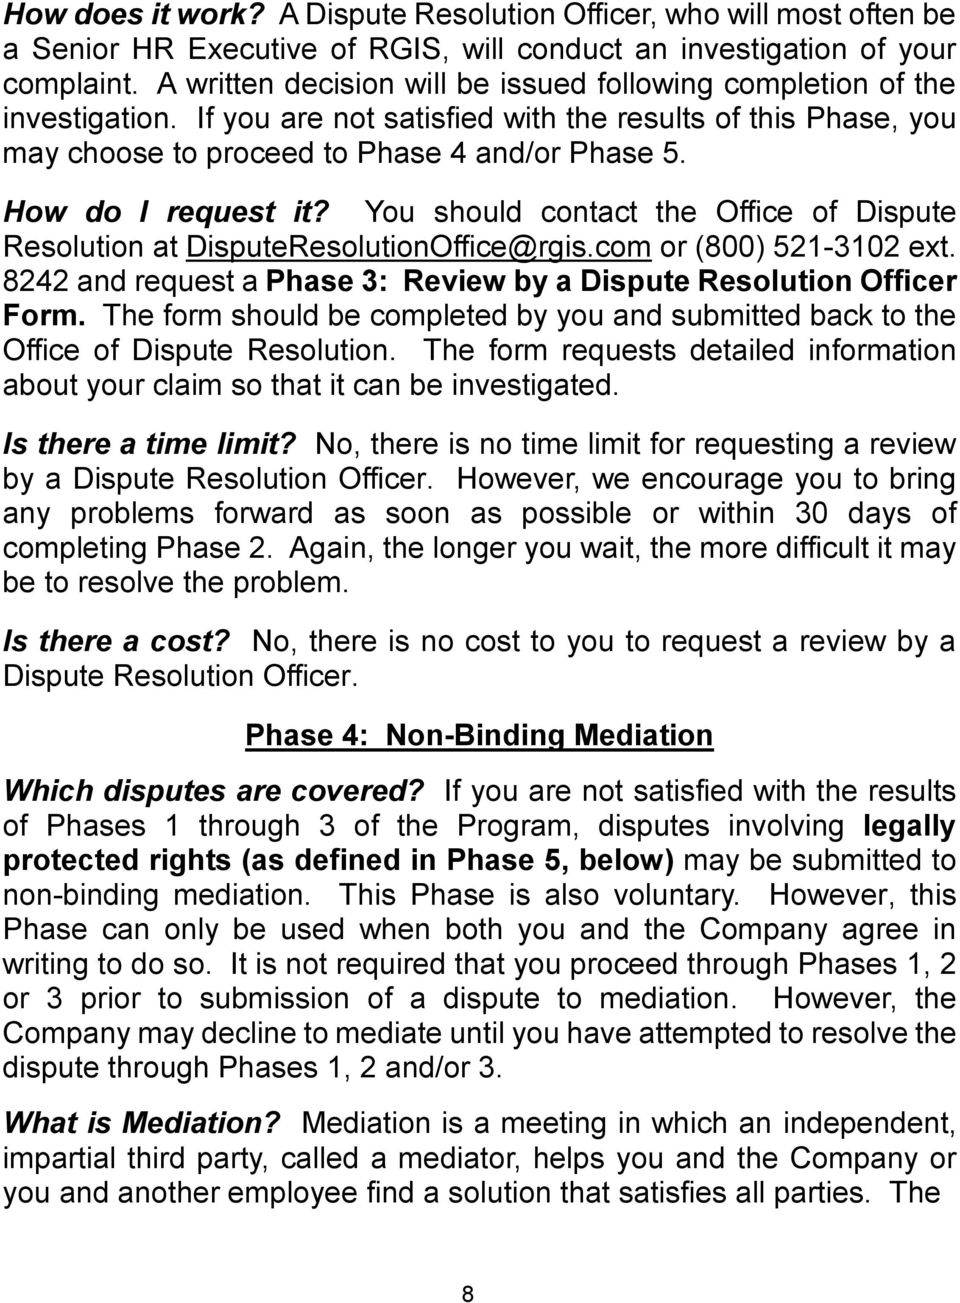 How do I request it? You should contact the Office of Dispute Resolution at DisputeResolutionOffice@rgis.com or (800) 521-3102 ext.